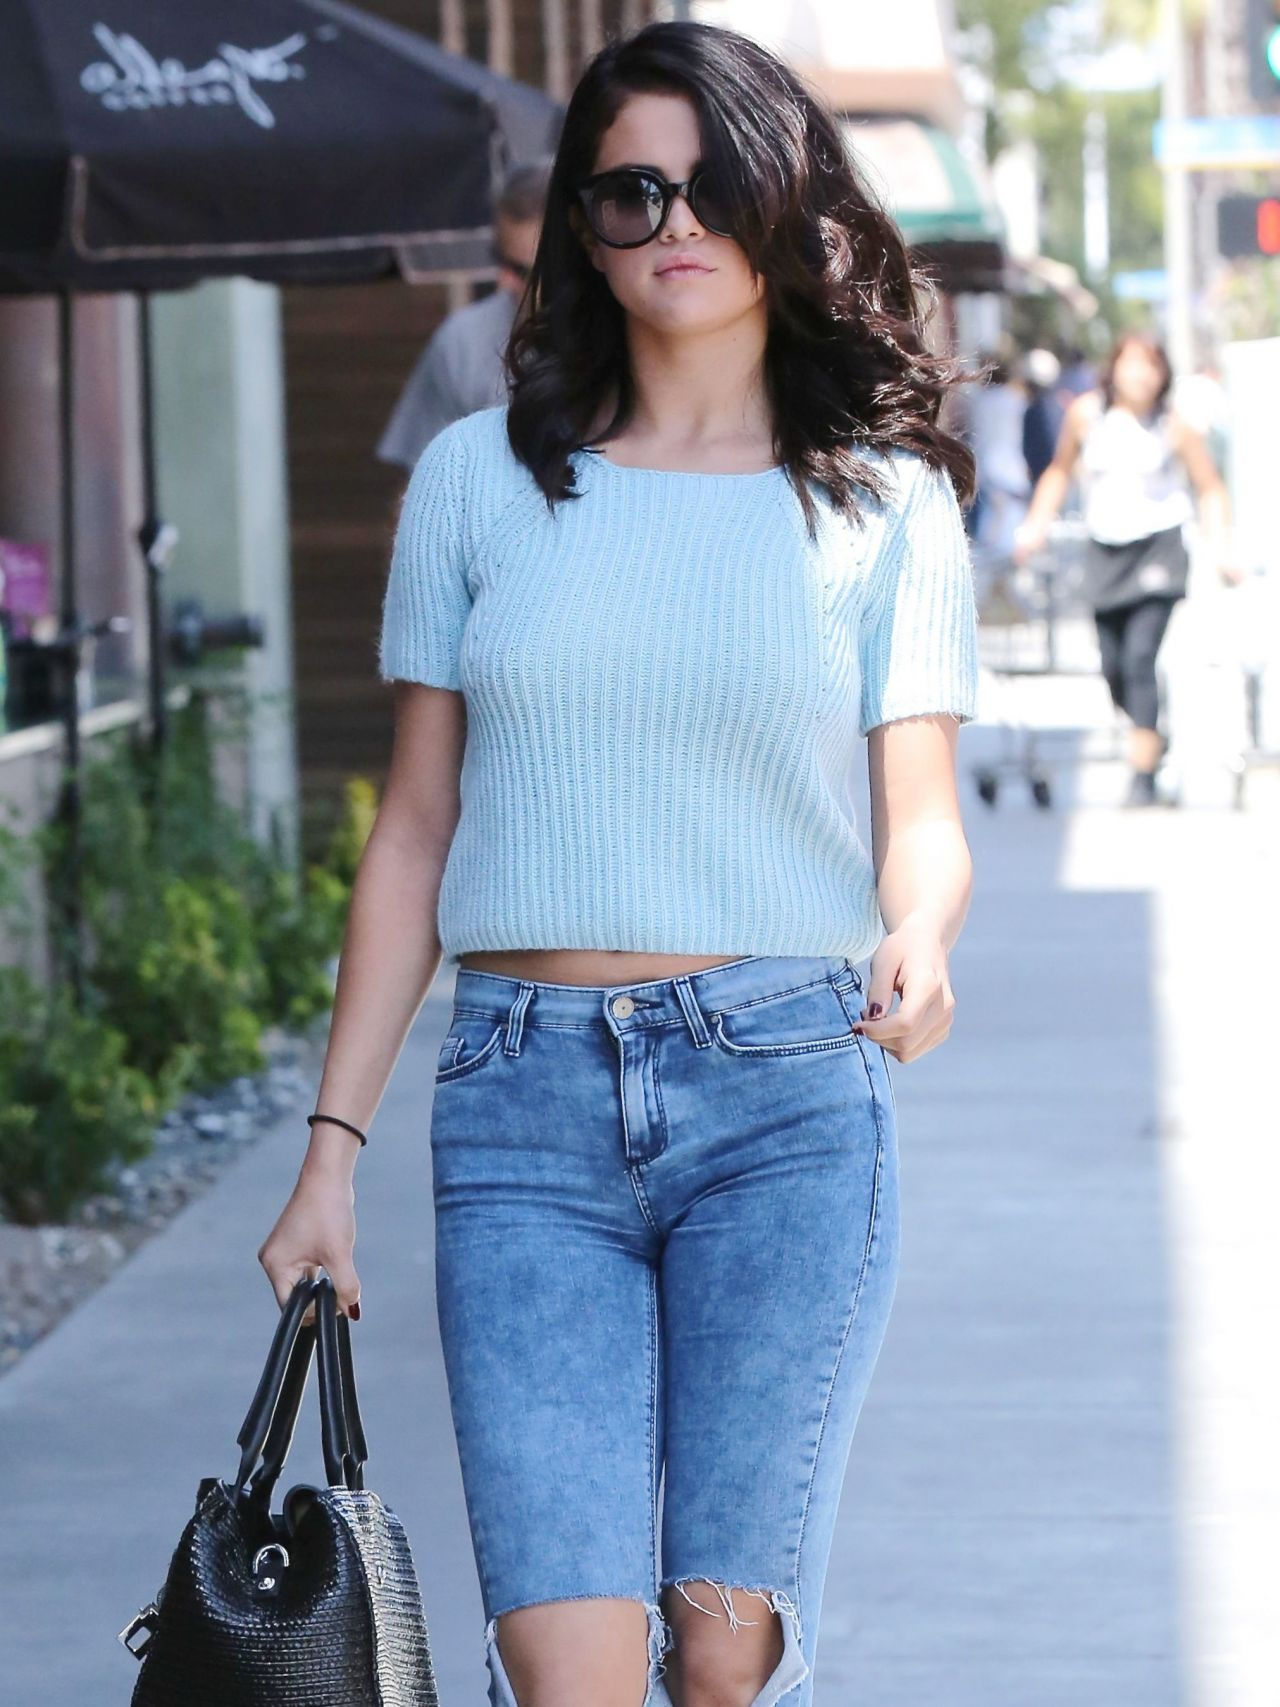 Range Rover Los Angeles >> Selena Gomez in Jeans - Out in Los Angeles - June 2014